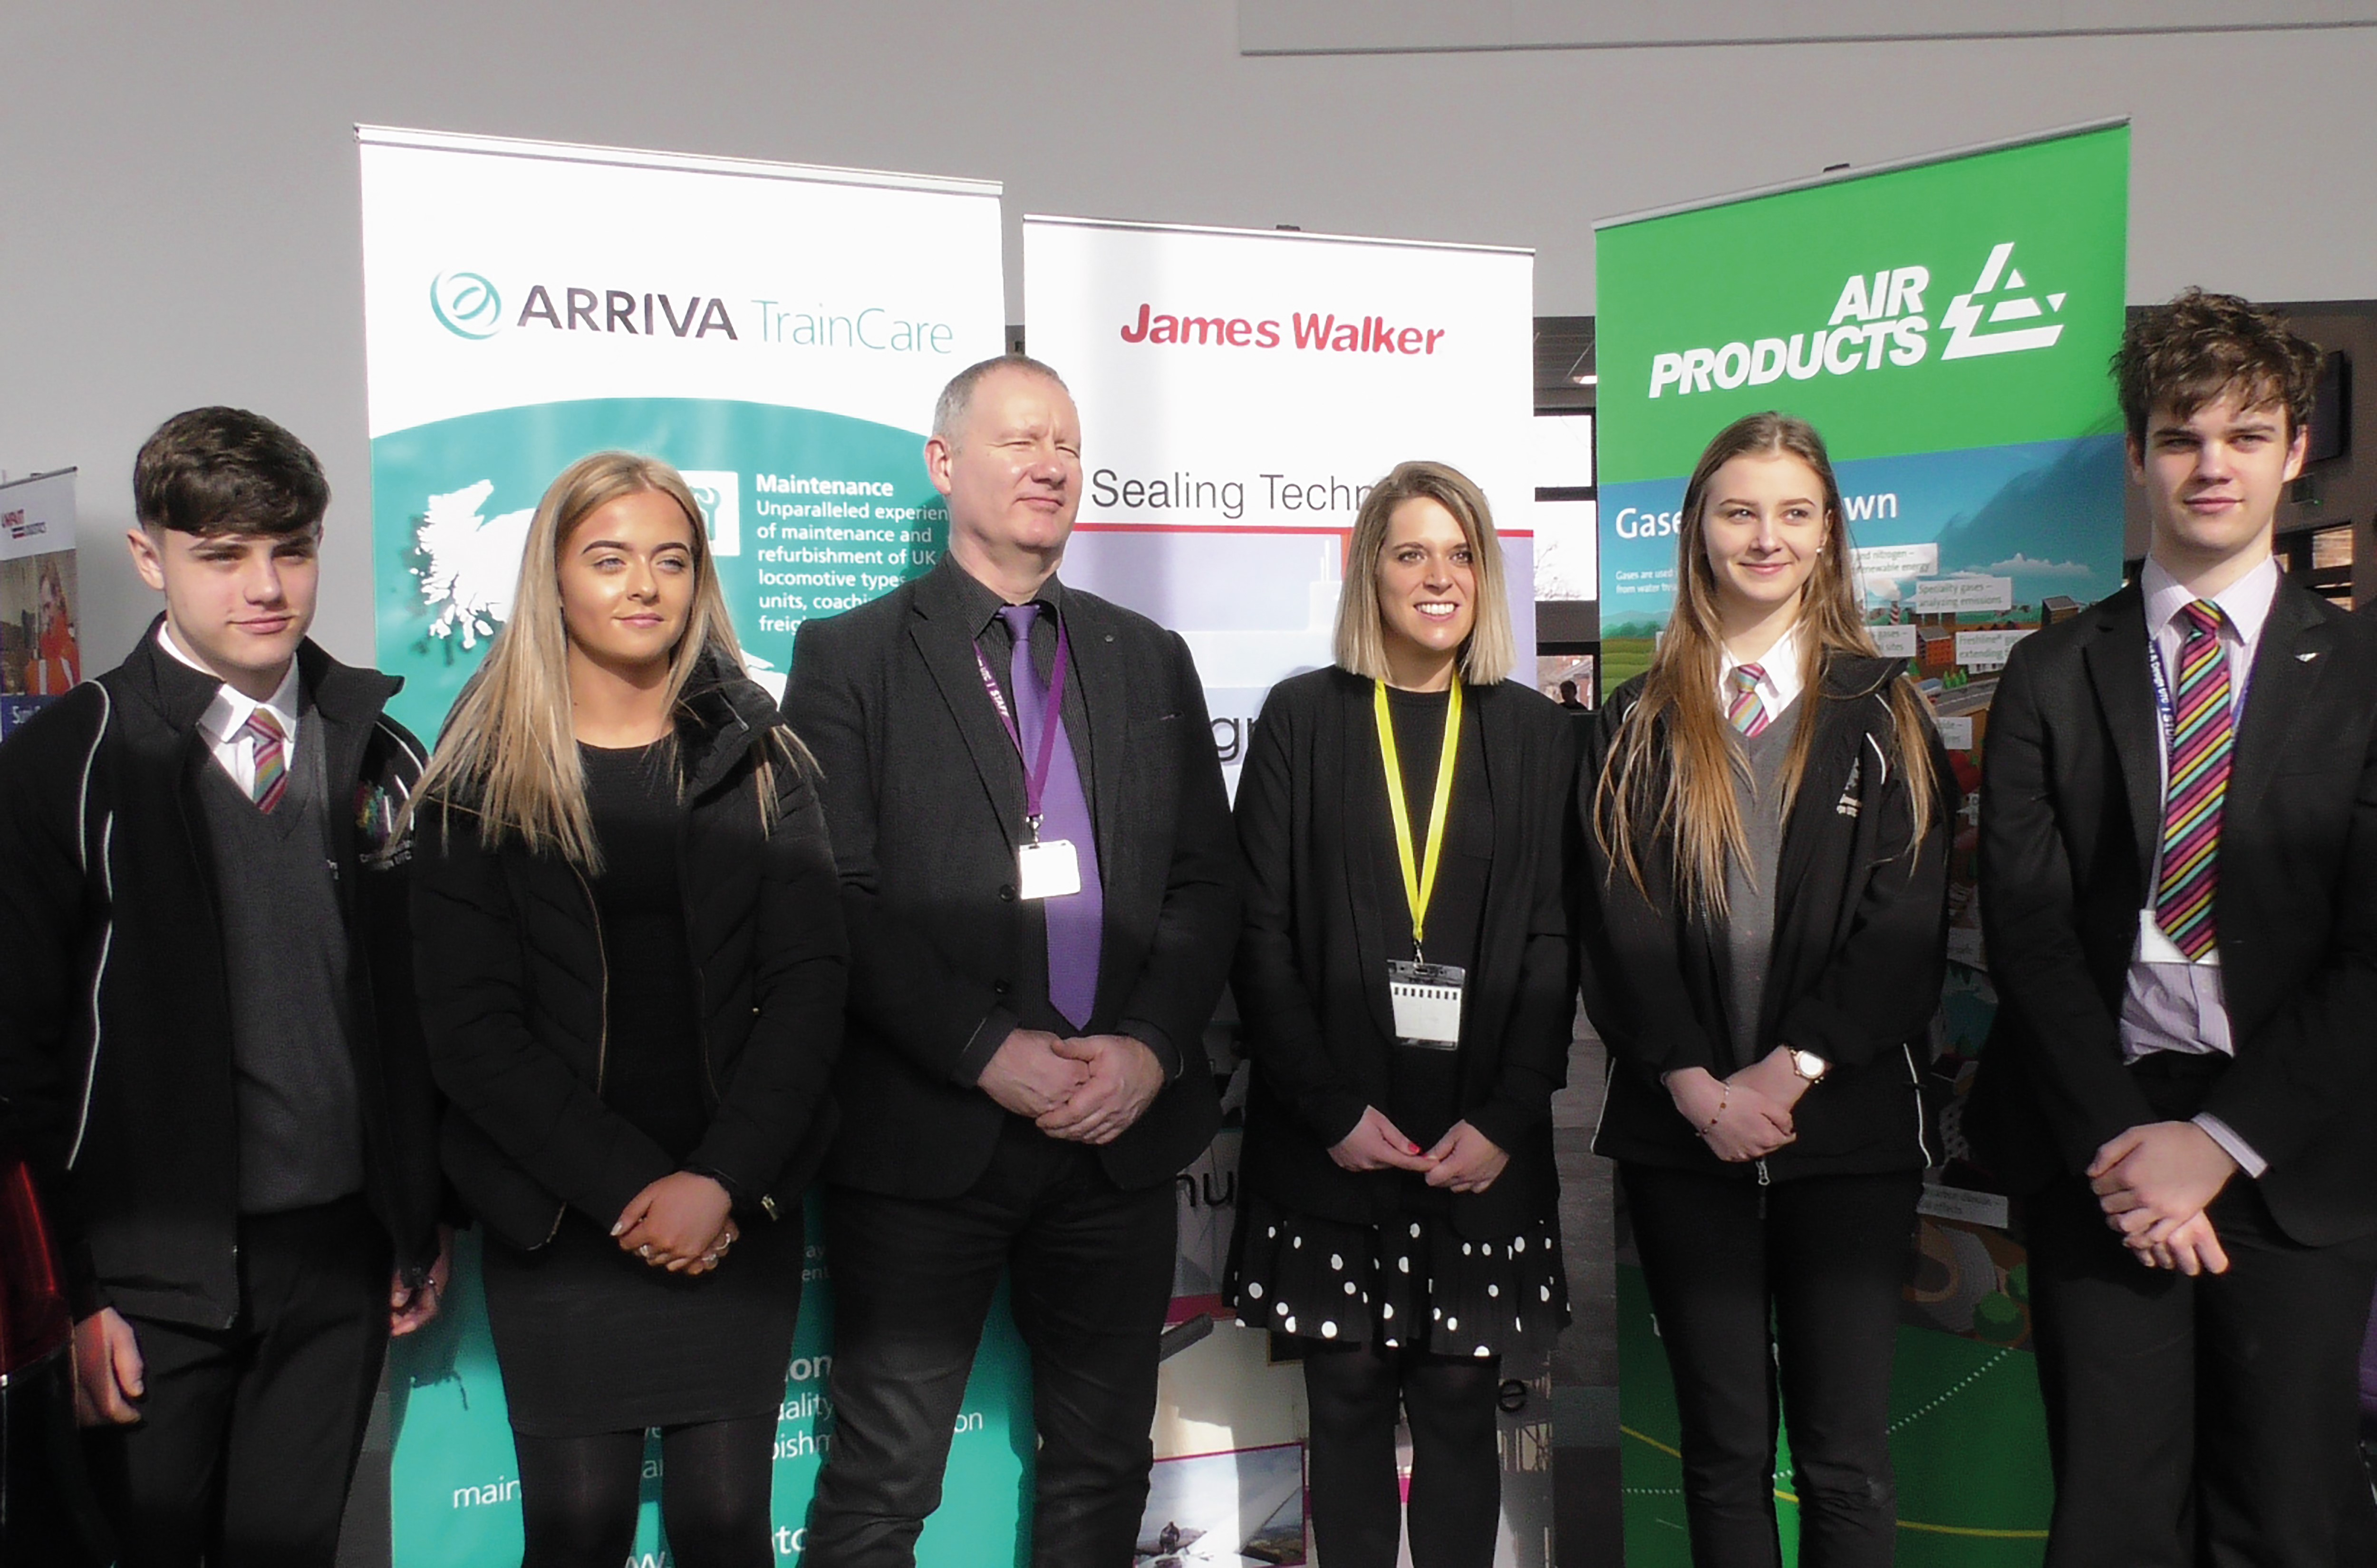 (L-R) Year 10 Student - Harry (from Nantwich), Year 12 Student - Georgia - (from Crewe), David Terry, Principal, Crewe Engineering & Design UTC, Laura Smith, Member of Parliament for Crewe and Nantwich, Year 10 Student - Adrianna (from Crewe), Year 12 Student Thomas (from Sandbach) at Crewe UTC.